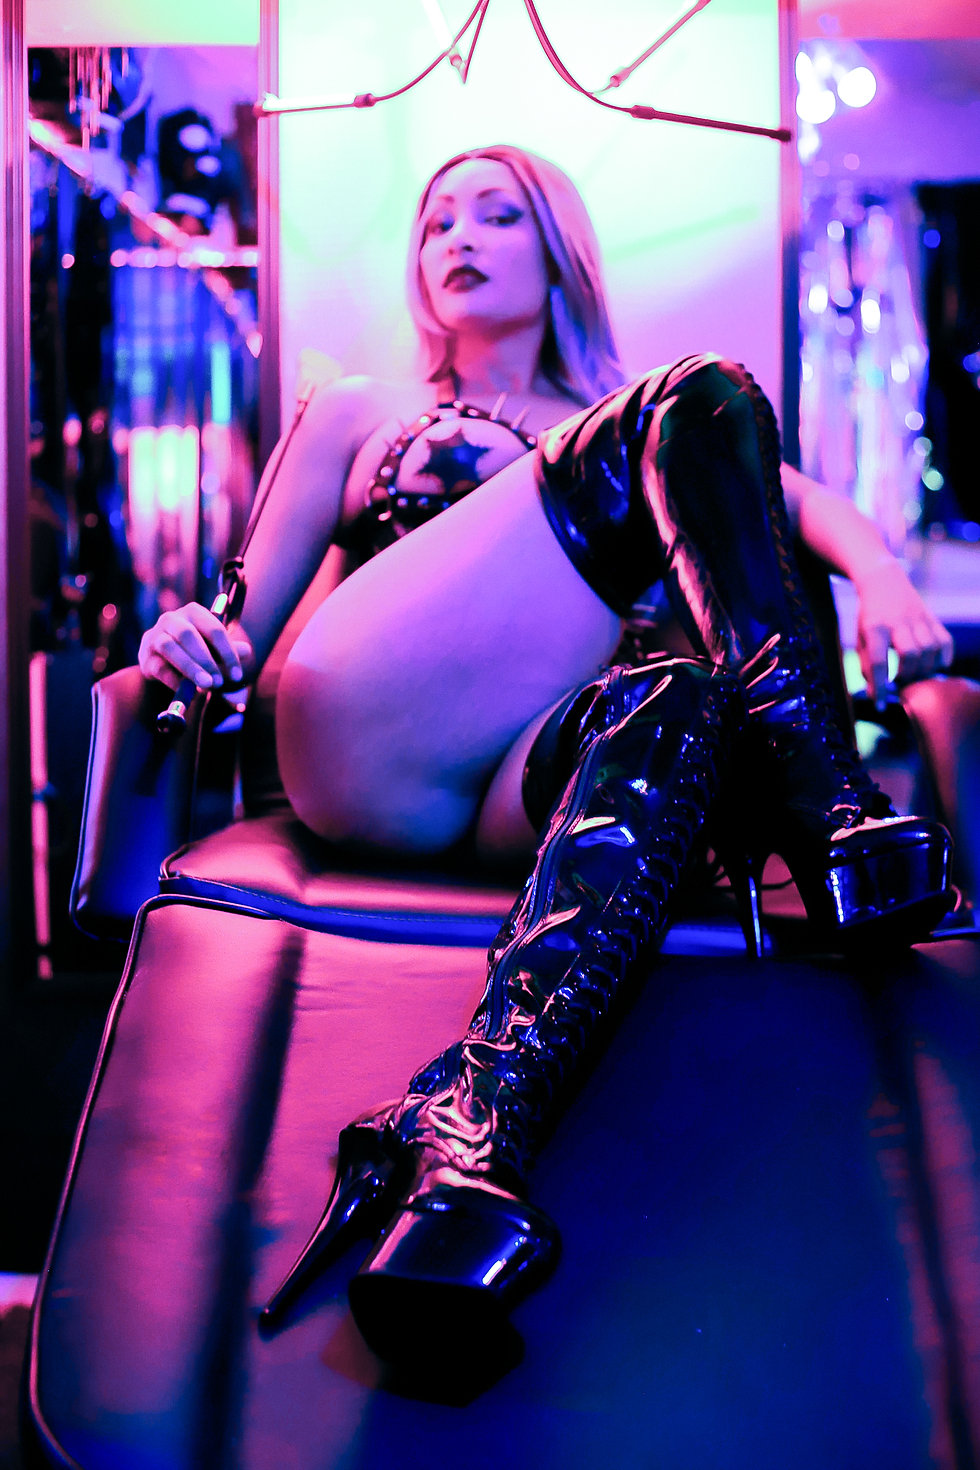 Dominatrix scarlets new austin dungeon available for femdom sessions